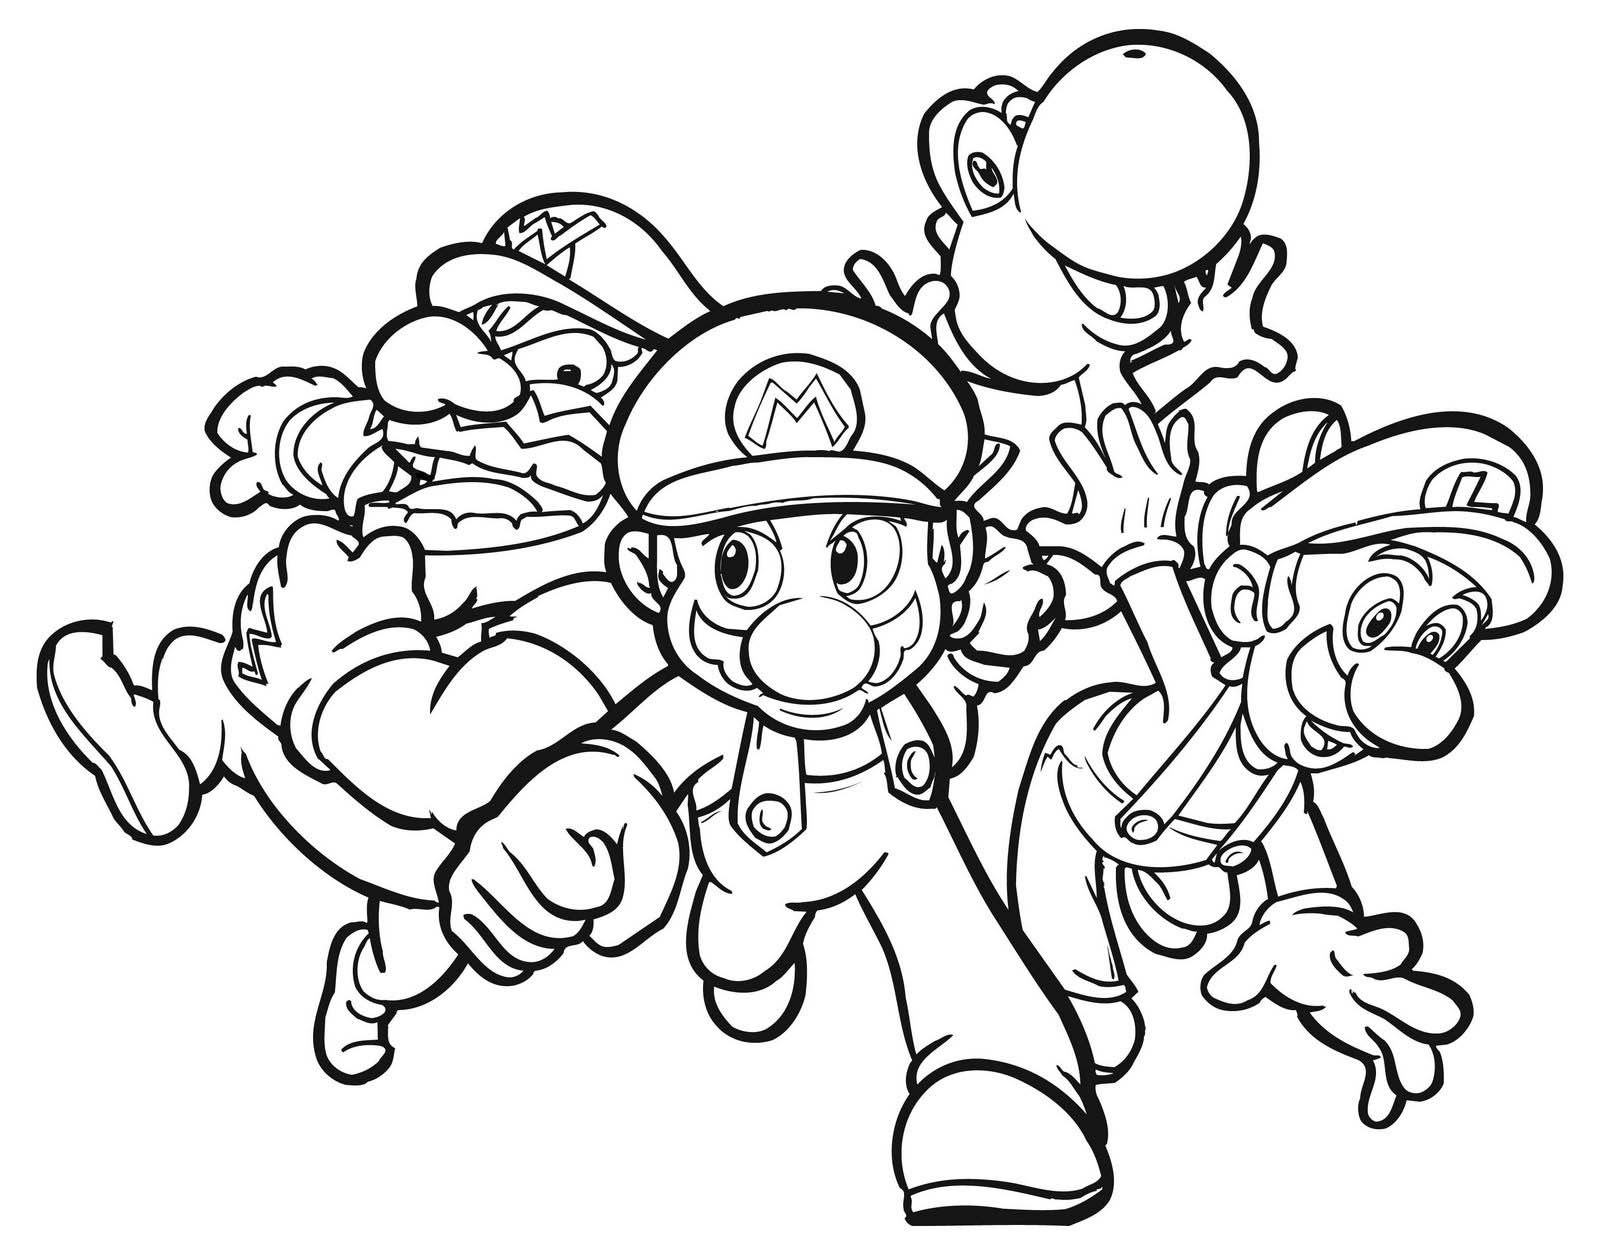 mario and luigi coloring luigi and mario coloring page free printable coloring pages coloring luigi mario and